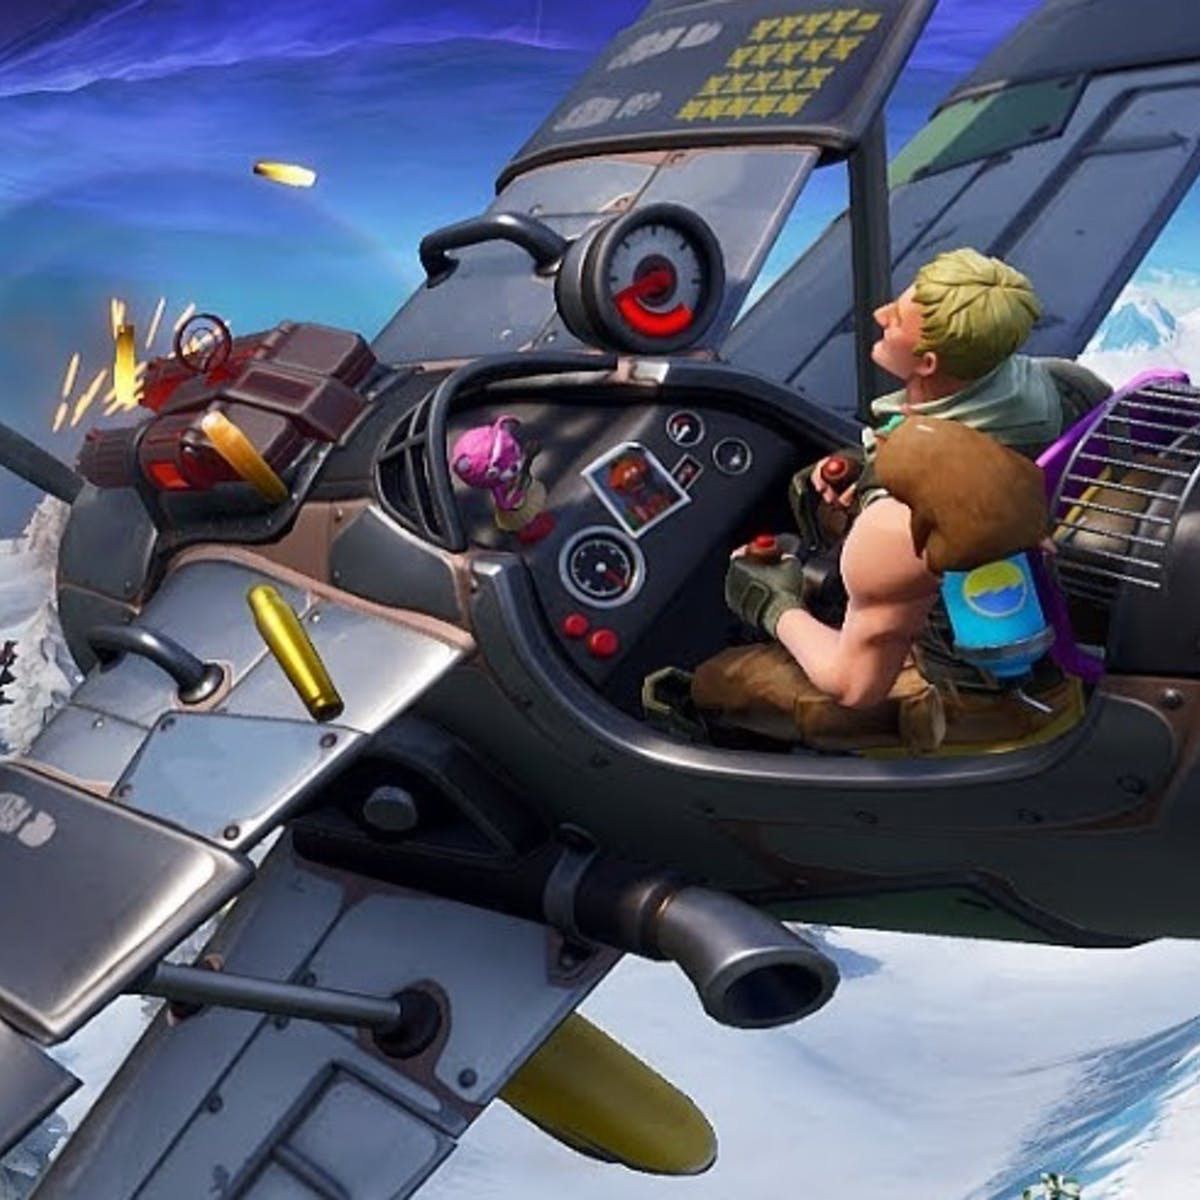 Fortnite X 4 Stormwing Plane Timed Trials How To Complete The - fortnite x 4 stormwing plane timed trials how to complete the challenge inverse